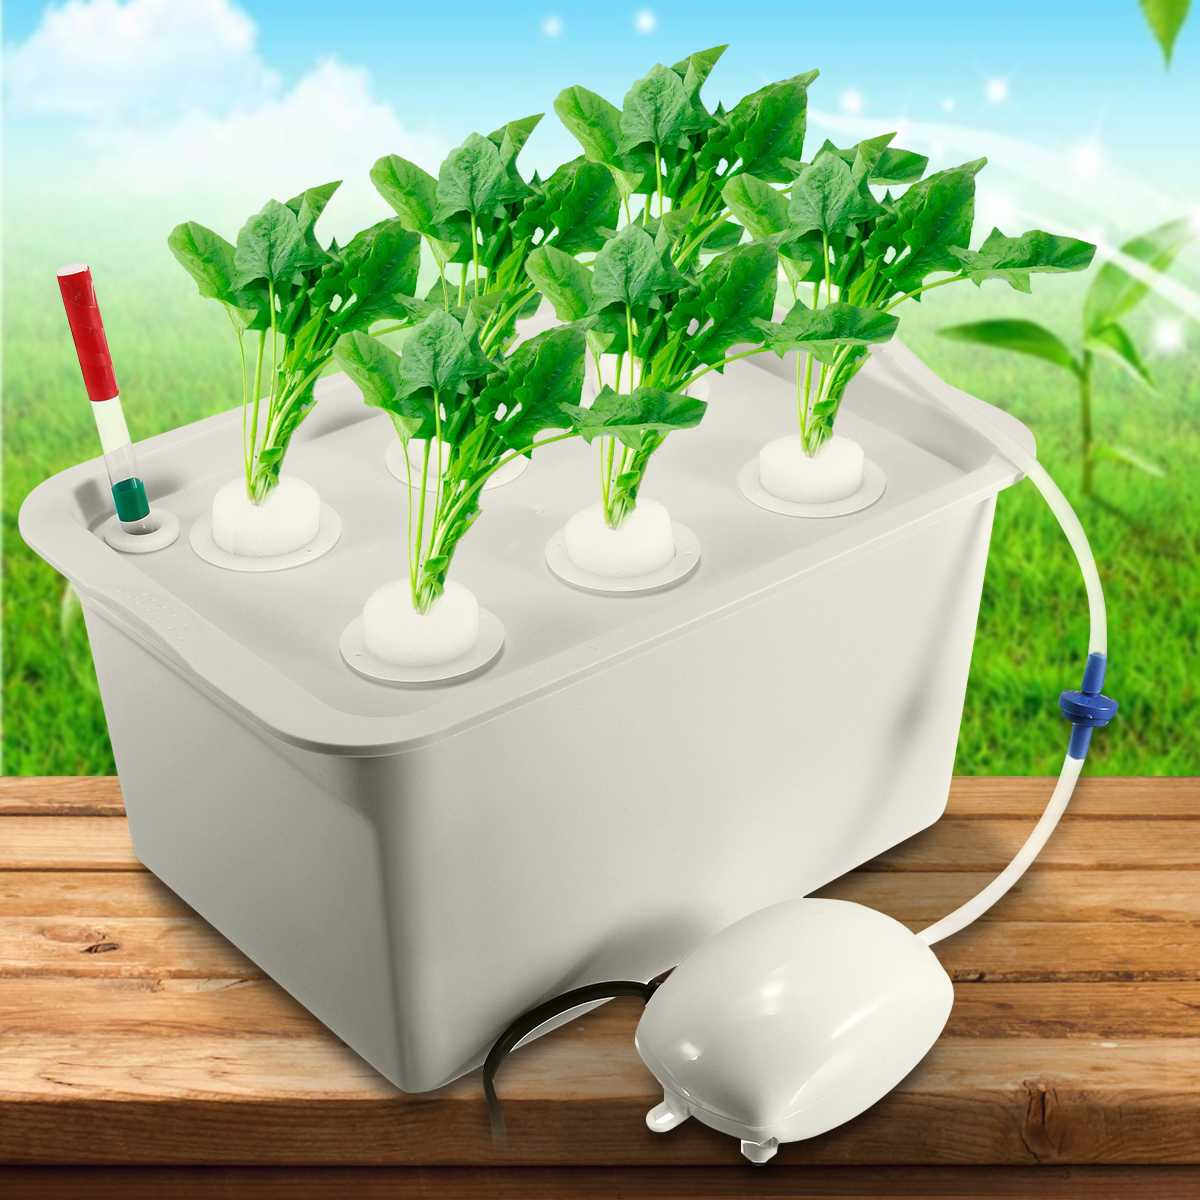 Hydroponic-Systems-Kit Cultivation-Box Seedling-Grow-Box-Kit Nursery-Pots Plant-Site